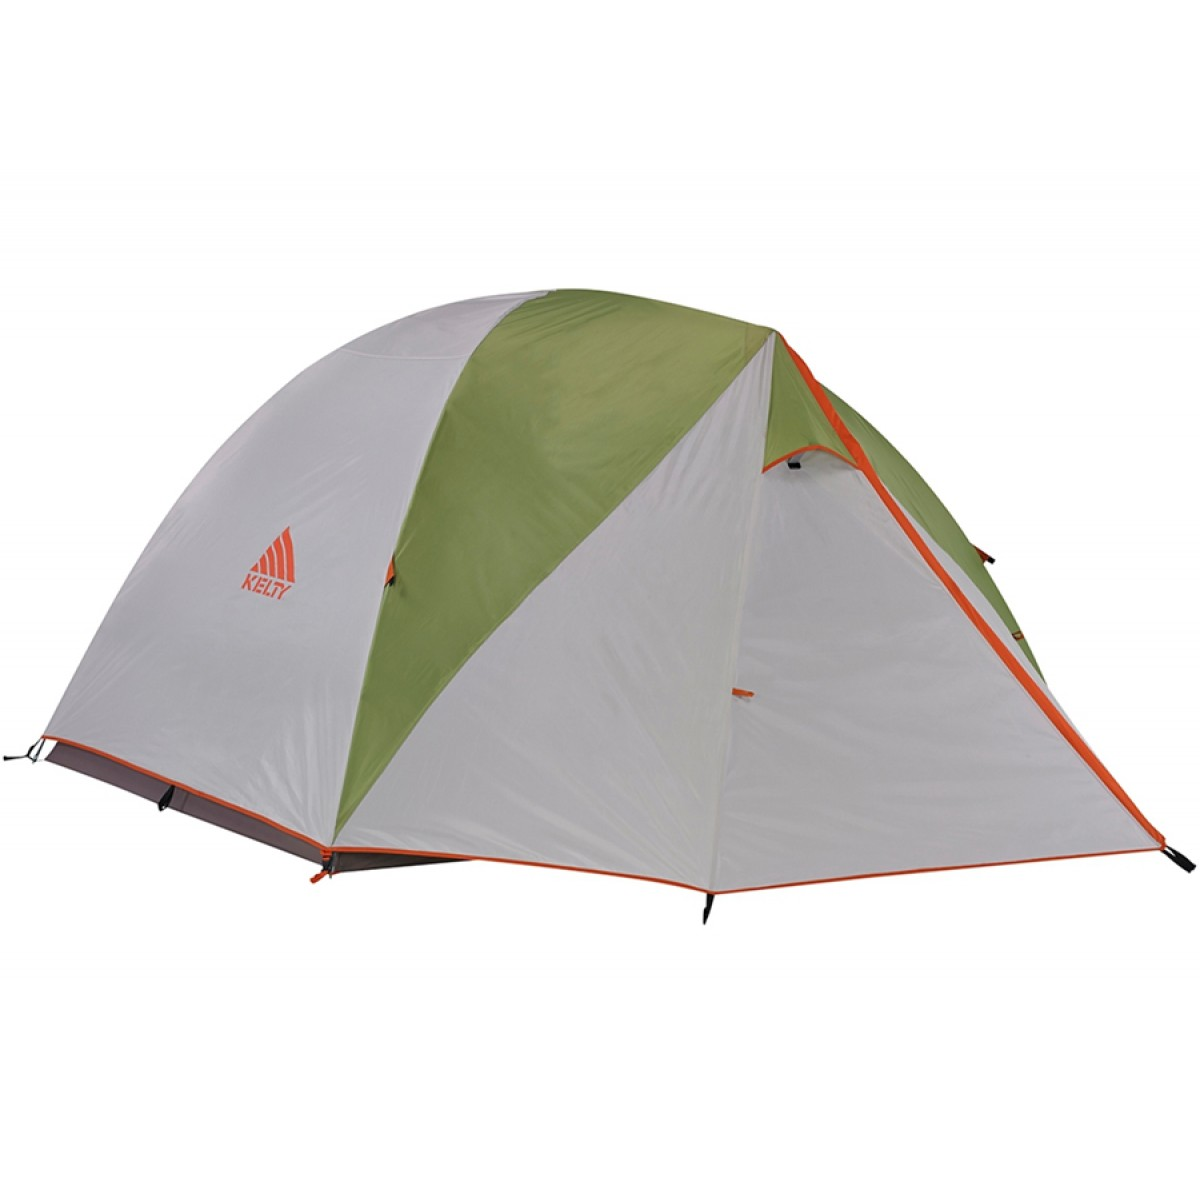 ... 1 · Kelty Acadia 4 Person Tent 40814912 Image 2 ...  sc 1 st  Kellyco & Kelty Acadia 4 Person Tent- Kellyco